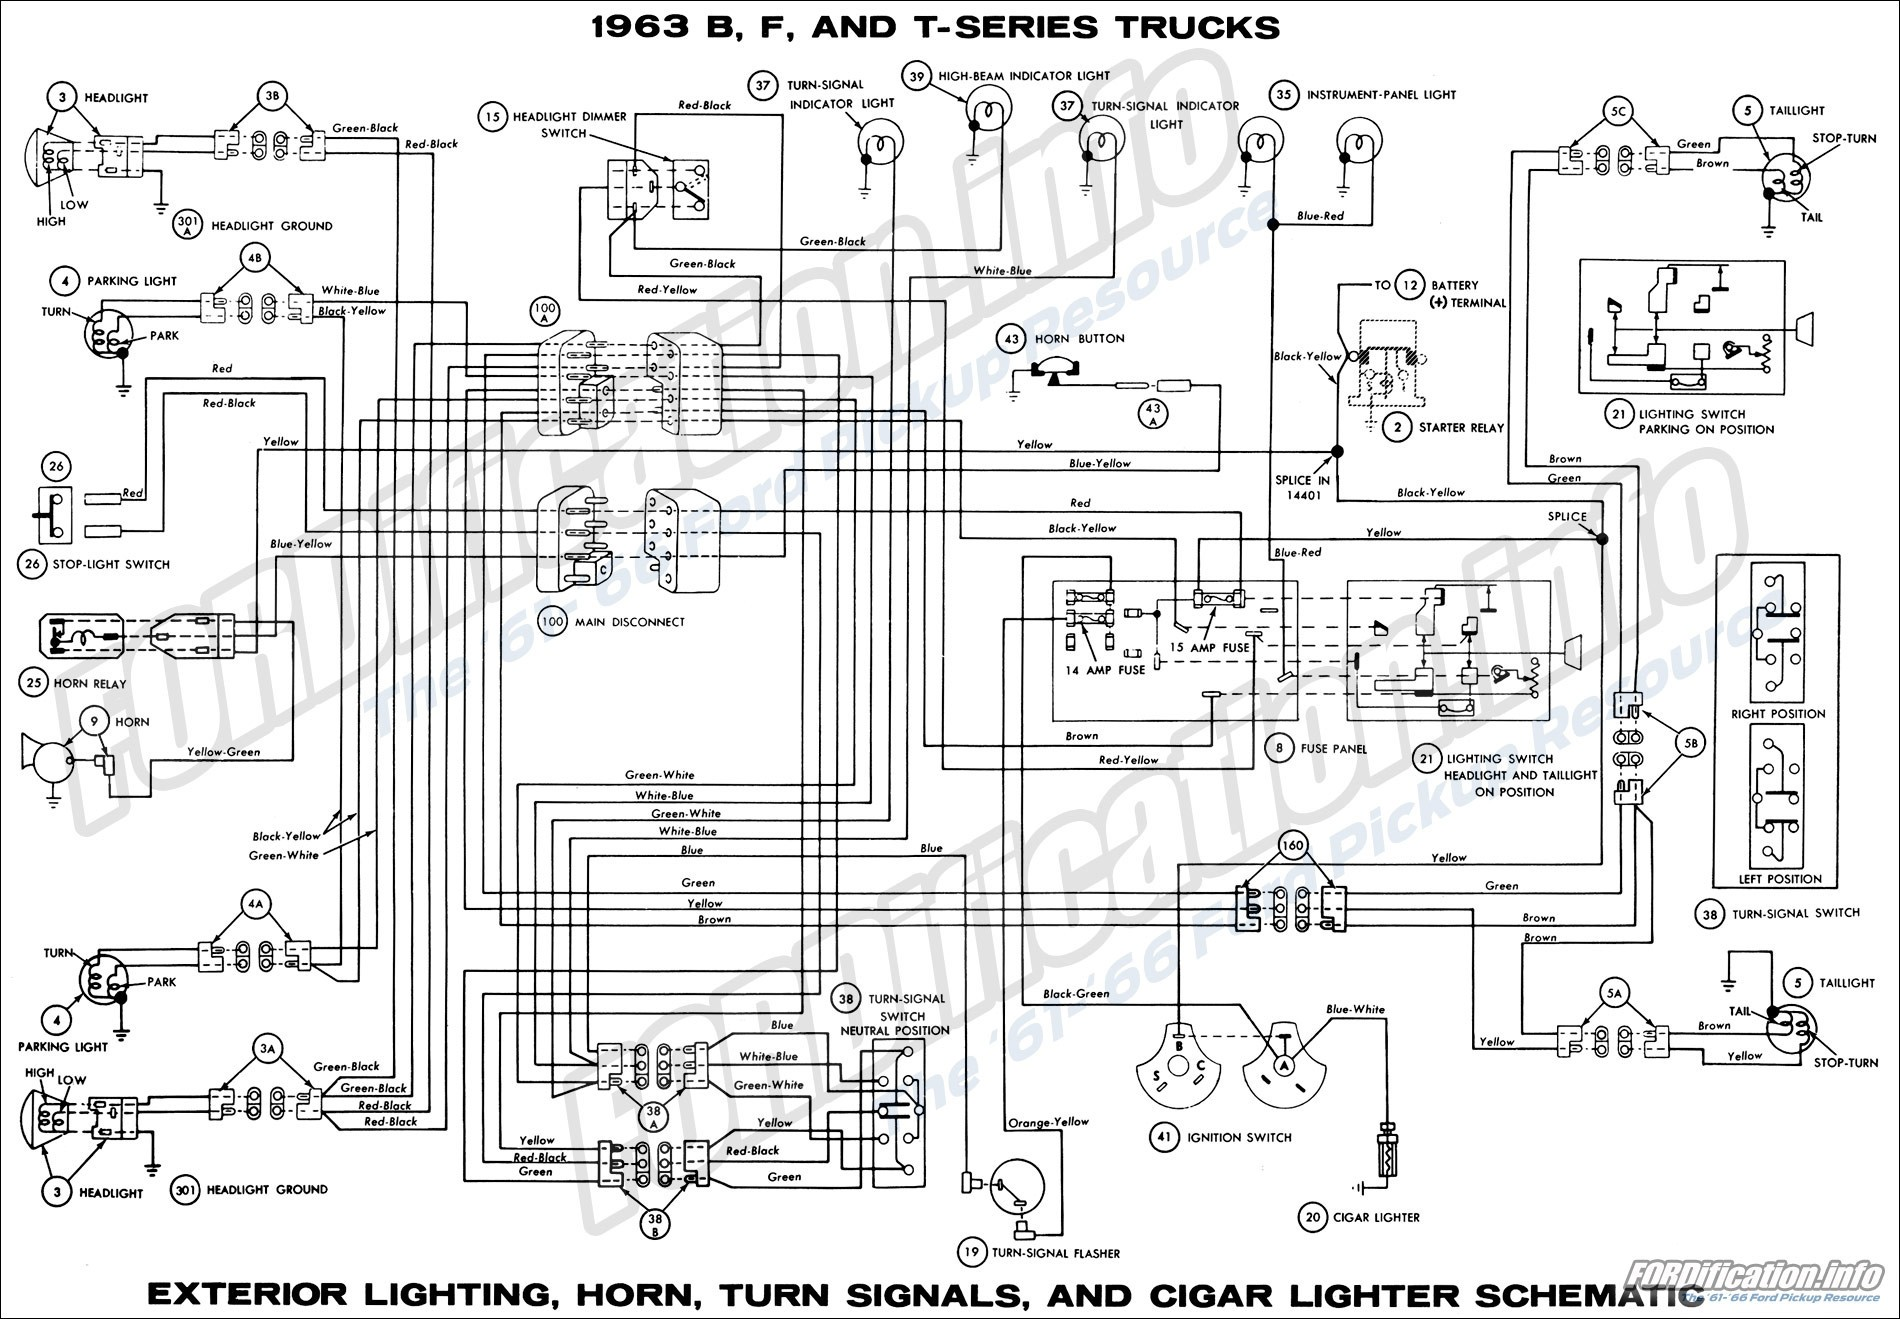 Ford Turn Signal Wiring Harness Great Design Of Diagram 1972 Vw Bug 79 Truck U2022 1965 Chevrolet Harnness Integra